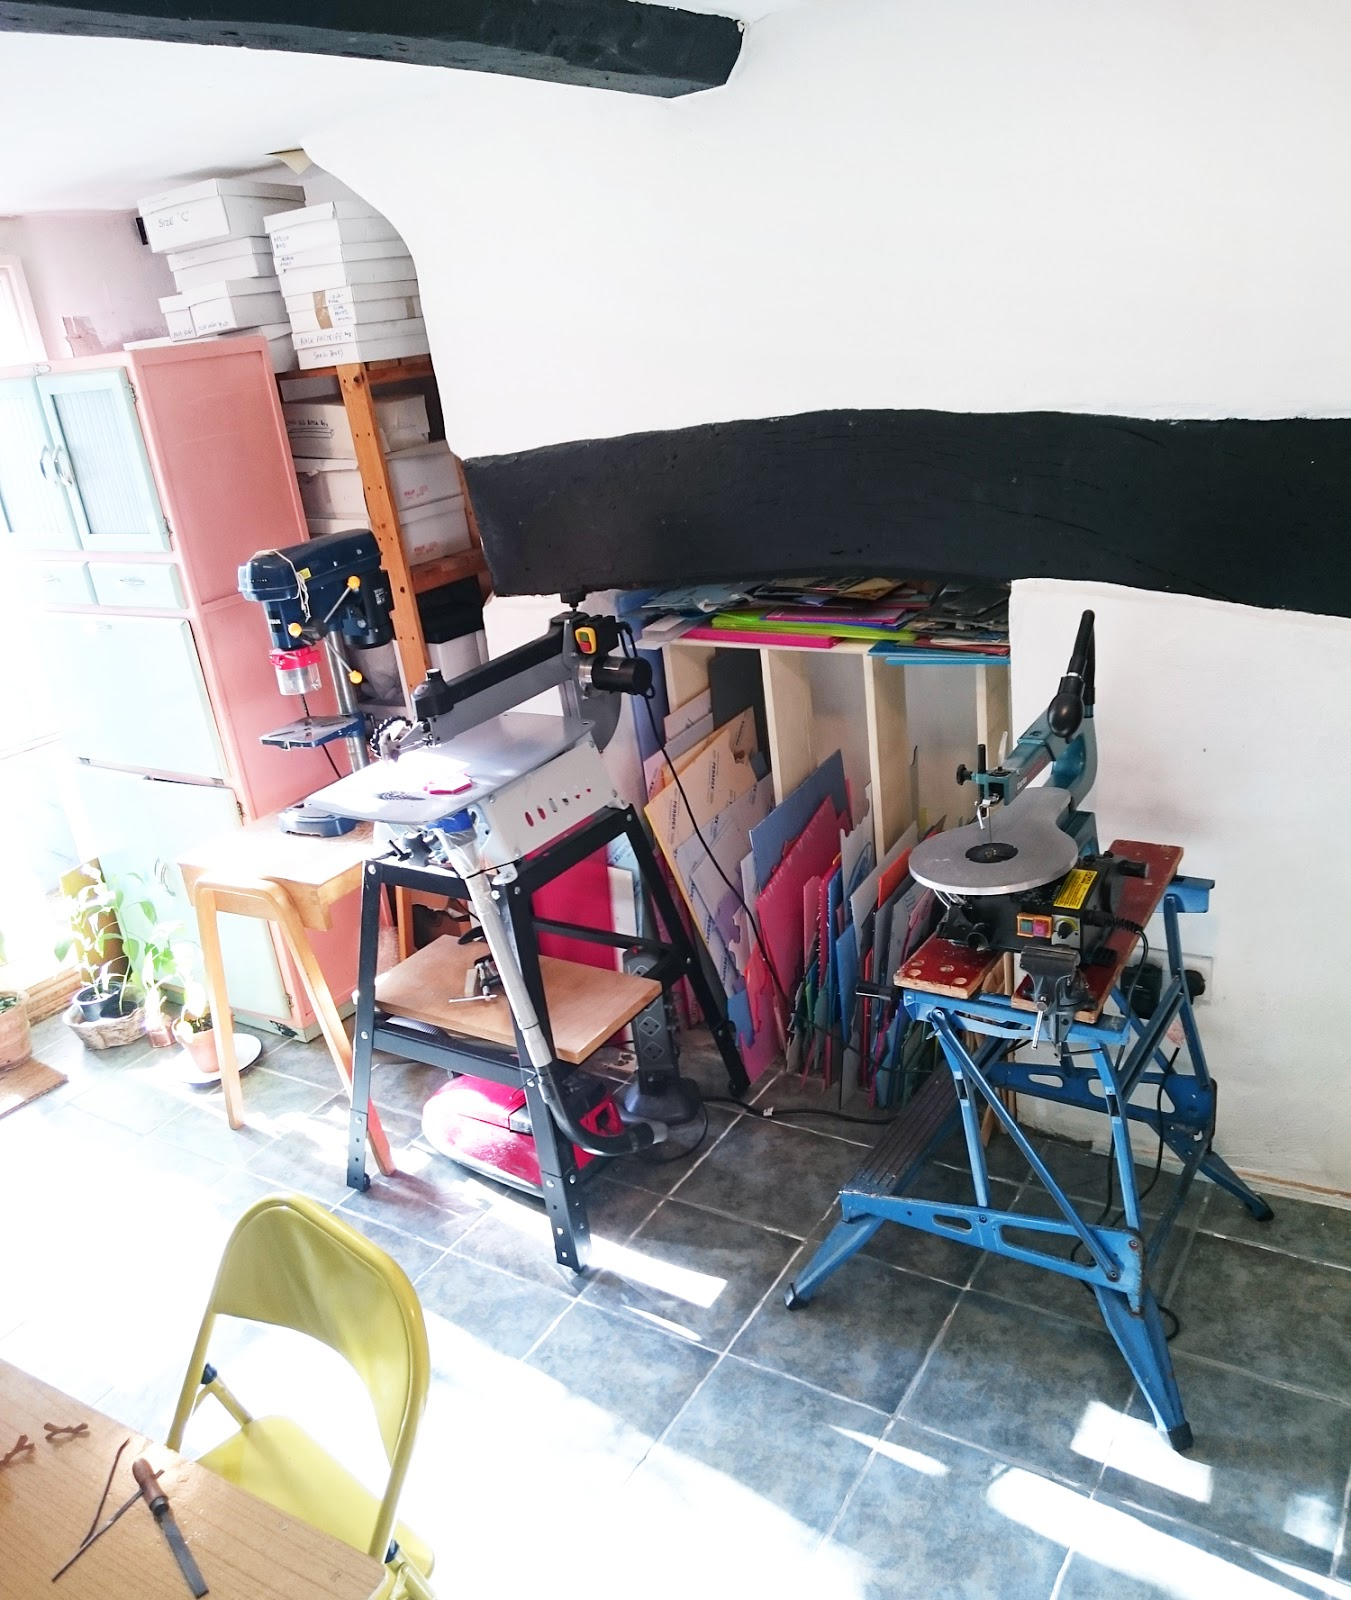 Tools of the trade: I Am Acrylic's sunny studio includes saws, drills and hand tools to make their jewellery, as well as lots of colourful acrylic sheets too, of course!